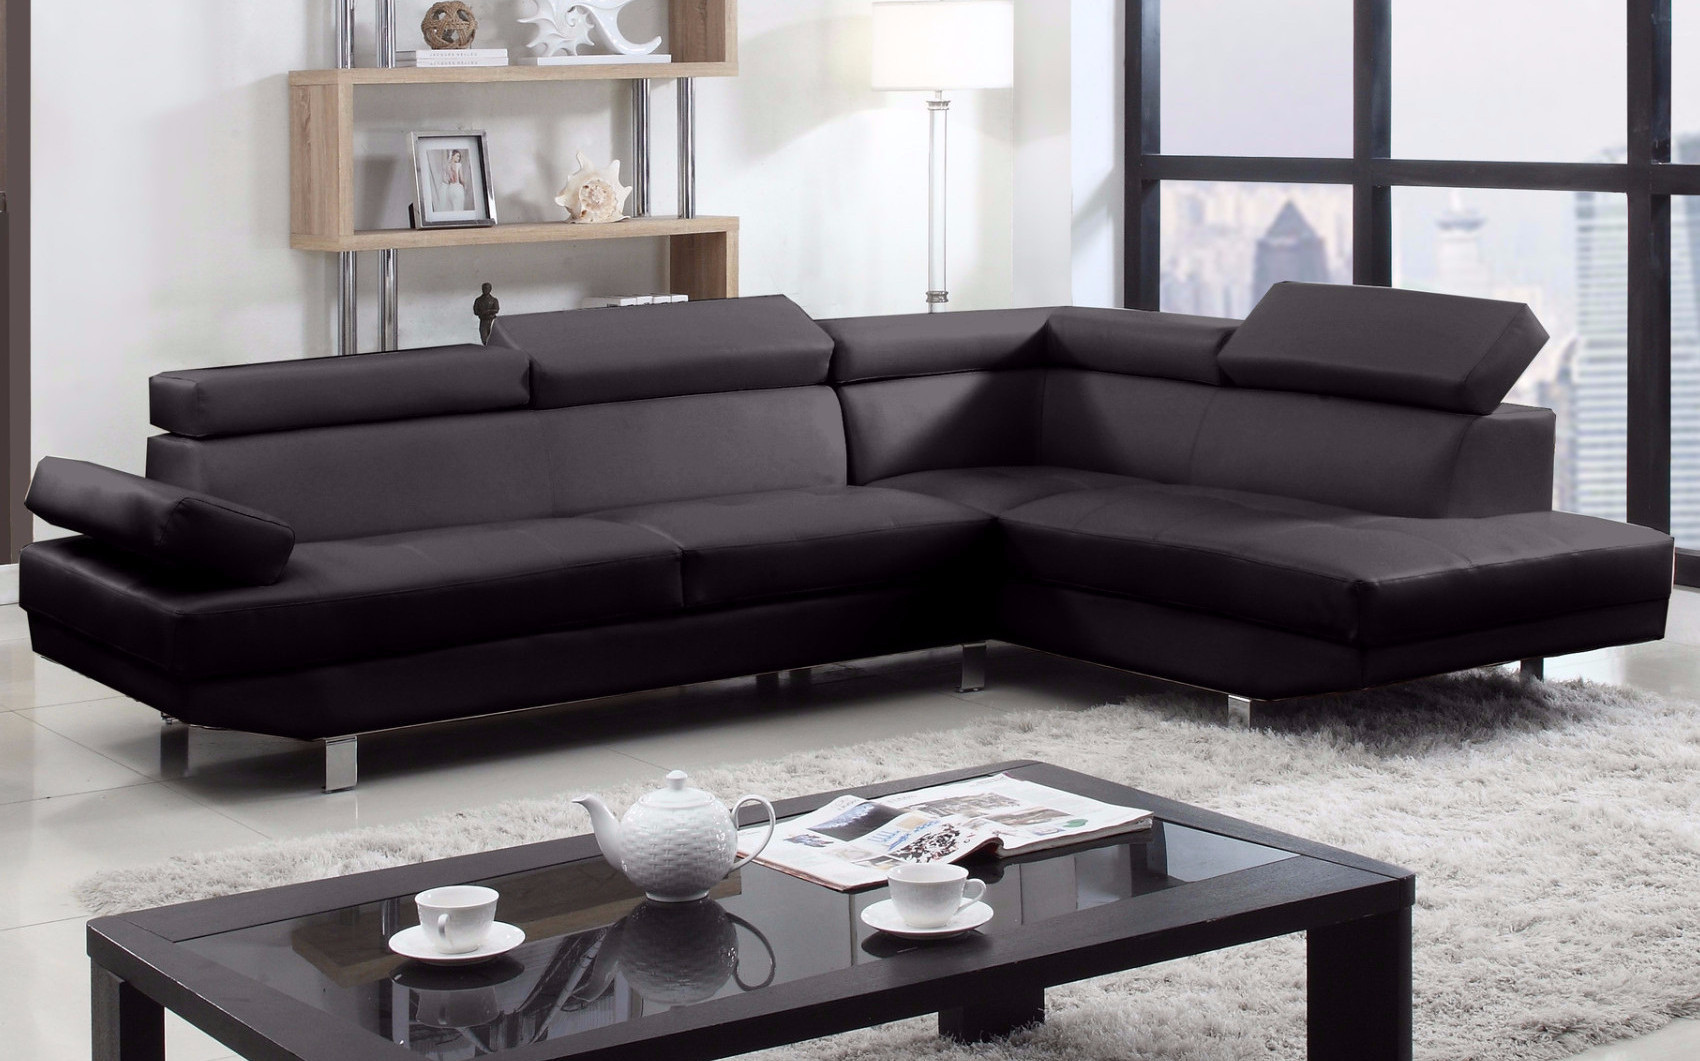 2 Piece Modern Bonded Leather Right Facing Chaise Sectional Sofa -  Traveller Location